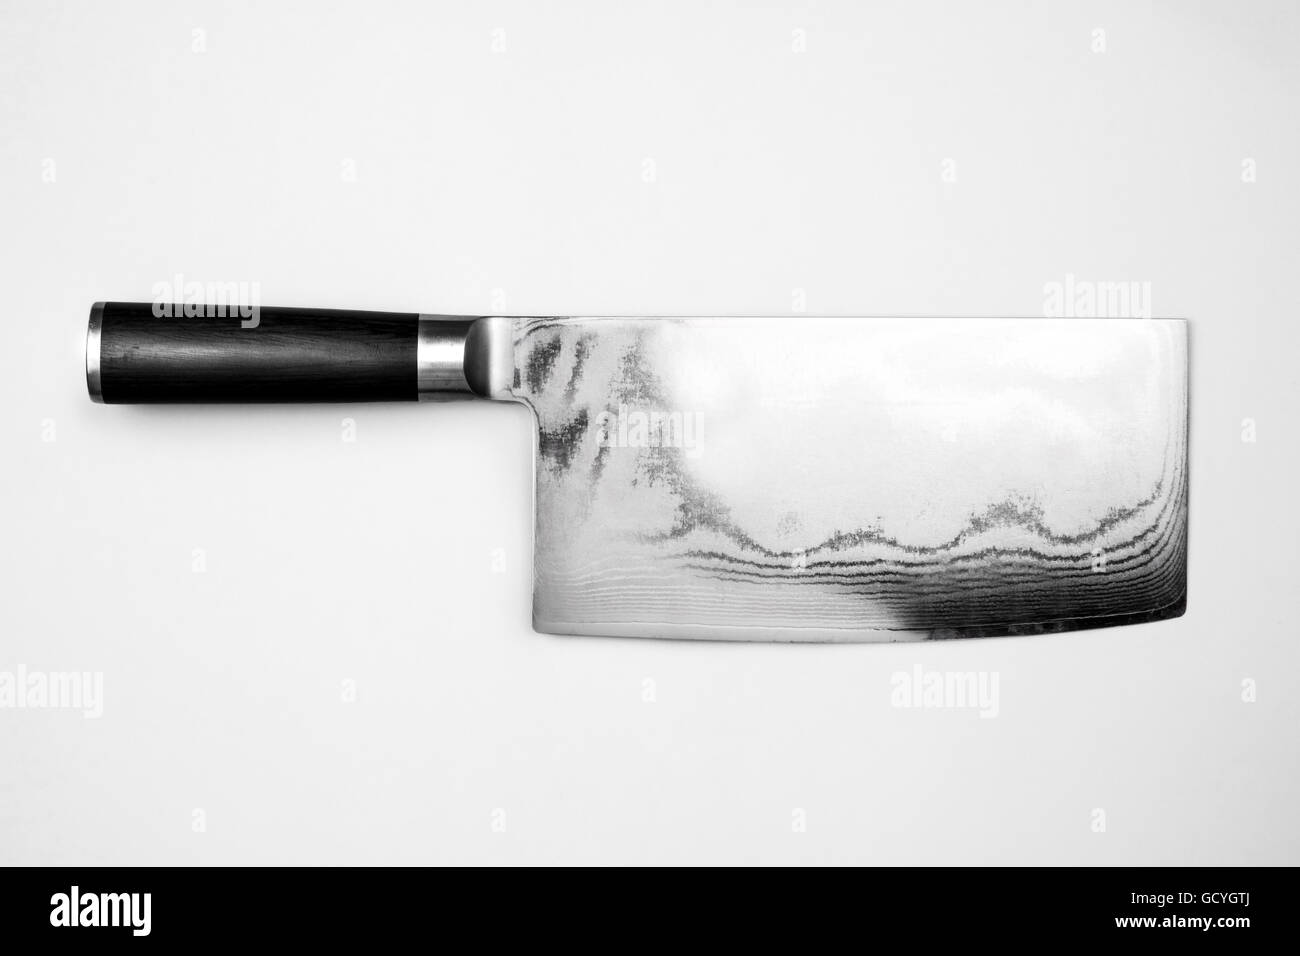 steel kitchen knife on pink background - Stock Image